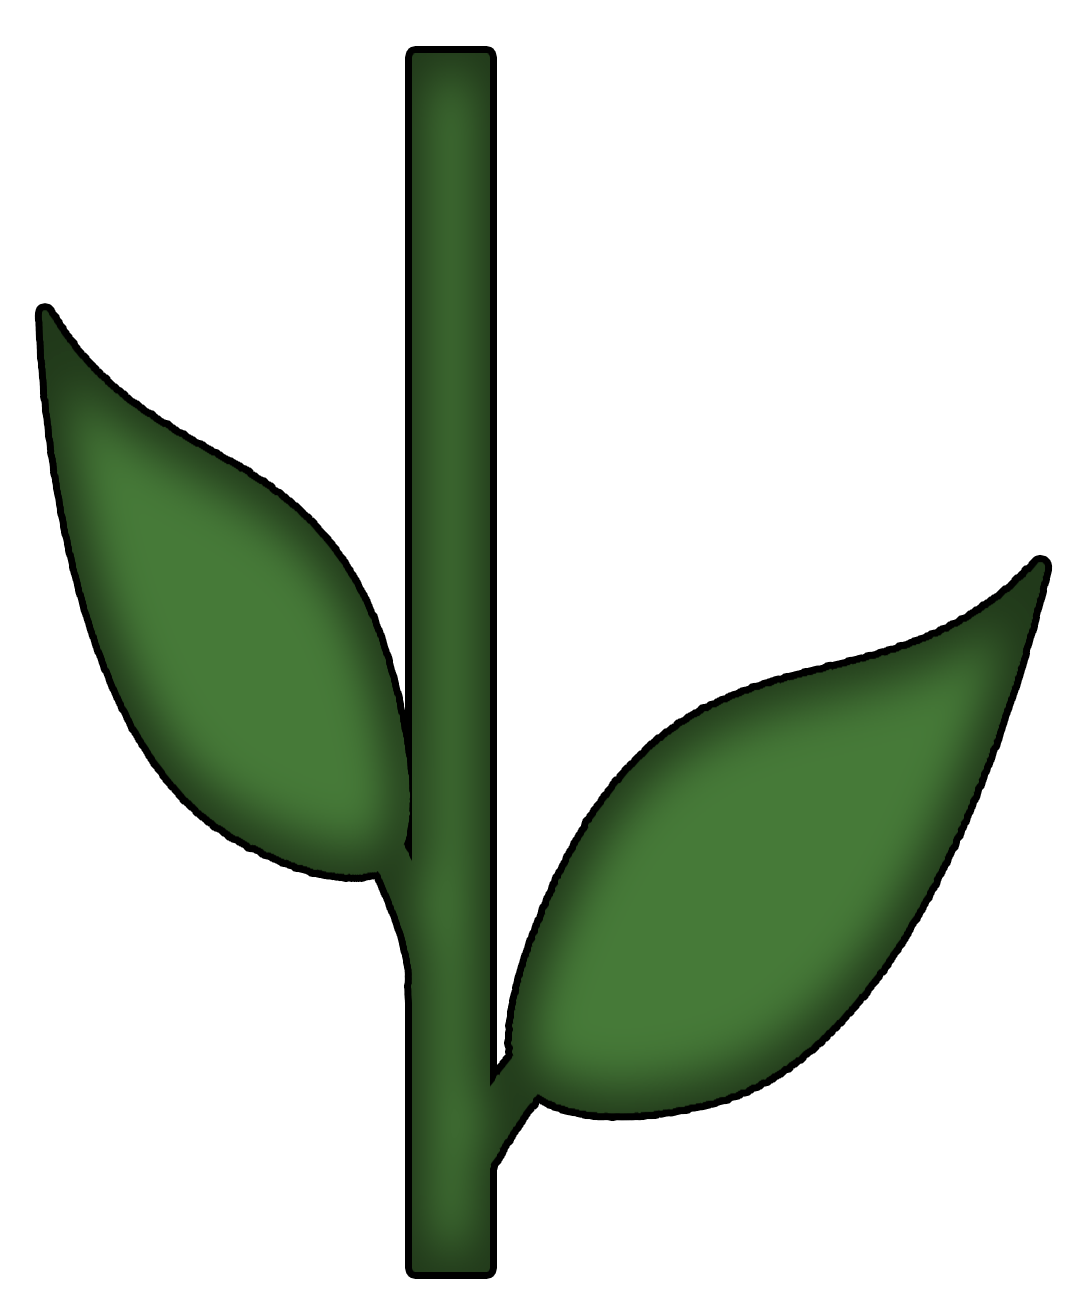 Flower With Stem Template